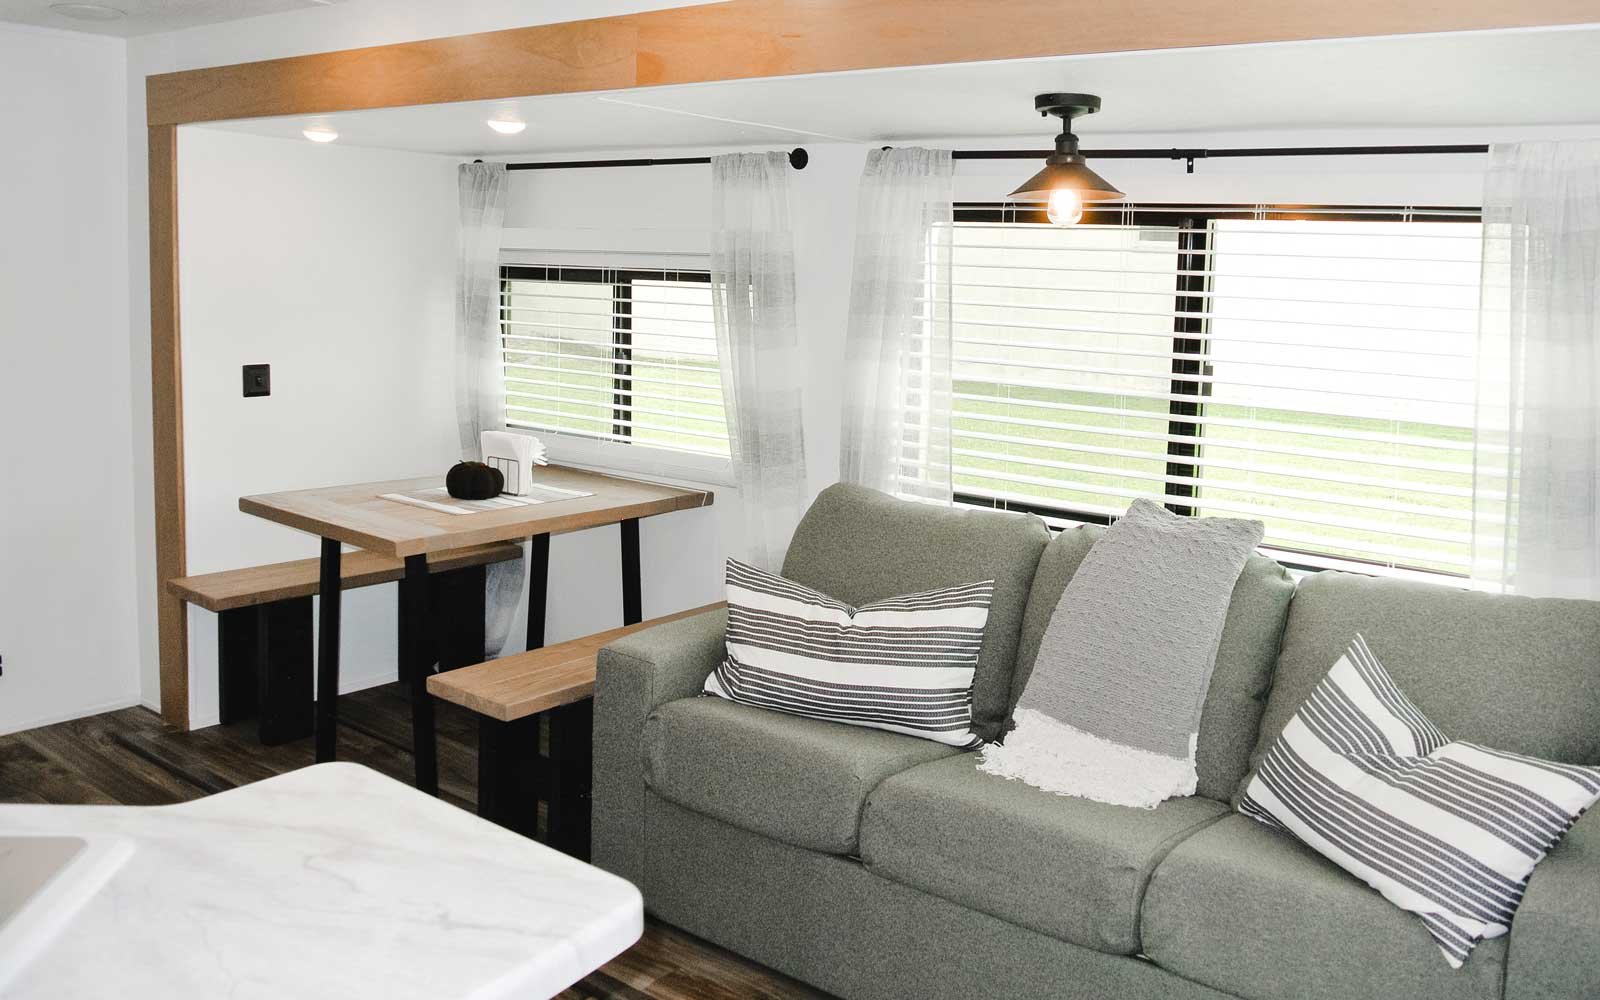 Living and dining in an RV